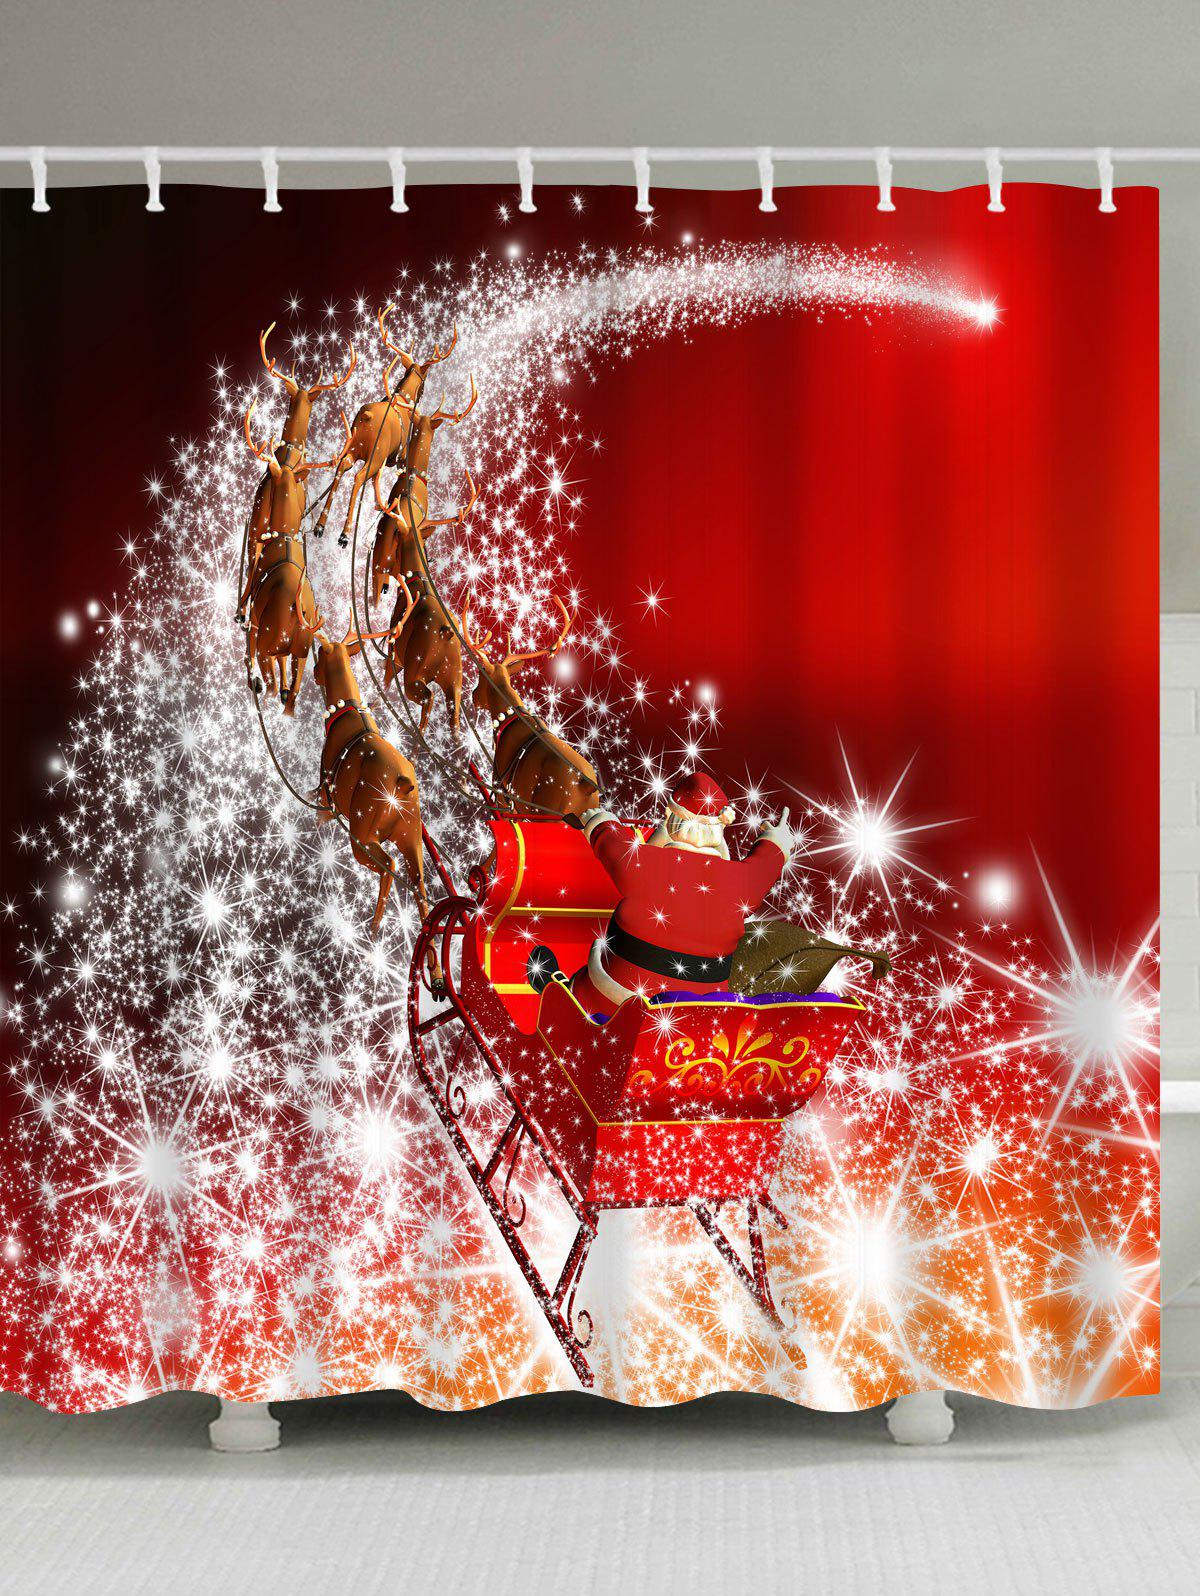 Merry Christmas Santa Coming Waterproof Barhroom Shower CurtainHOME<br><br>Size: W59 INCH * L71 INCH; Color: RED; Products Type: Shower Curtains; Materials: Polyester; Style: Festival; Number of Hook Holes: W59 inch*L71 inch: 10; W71 inch*L71 inch: 12; W71 inch*L79 inch: 12; Package Contents: 1 x Shower Curtain 1 x Hooks (Set);